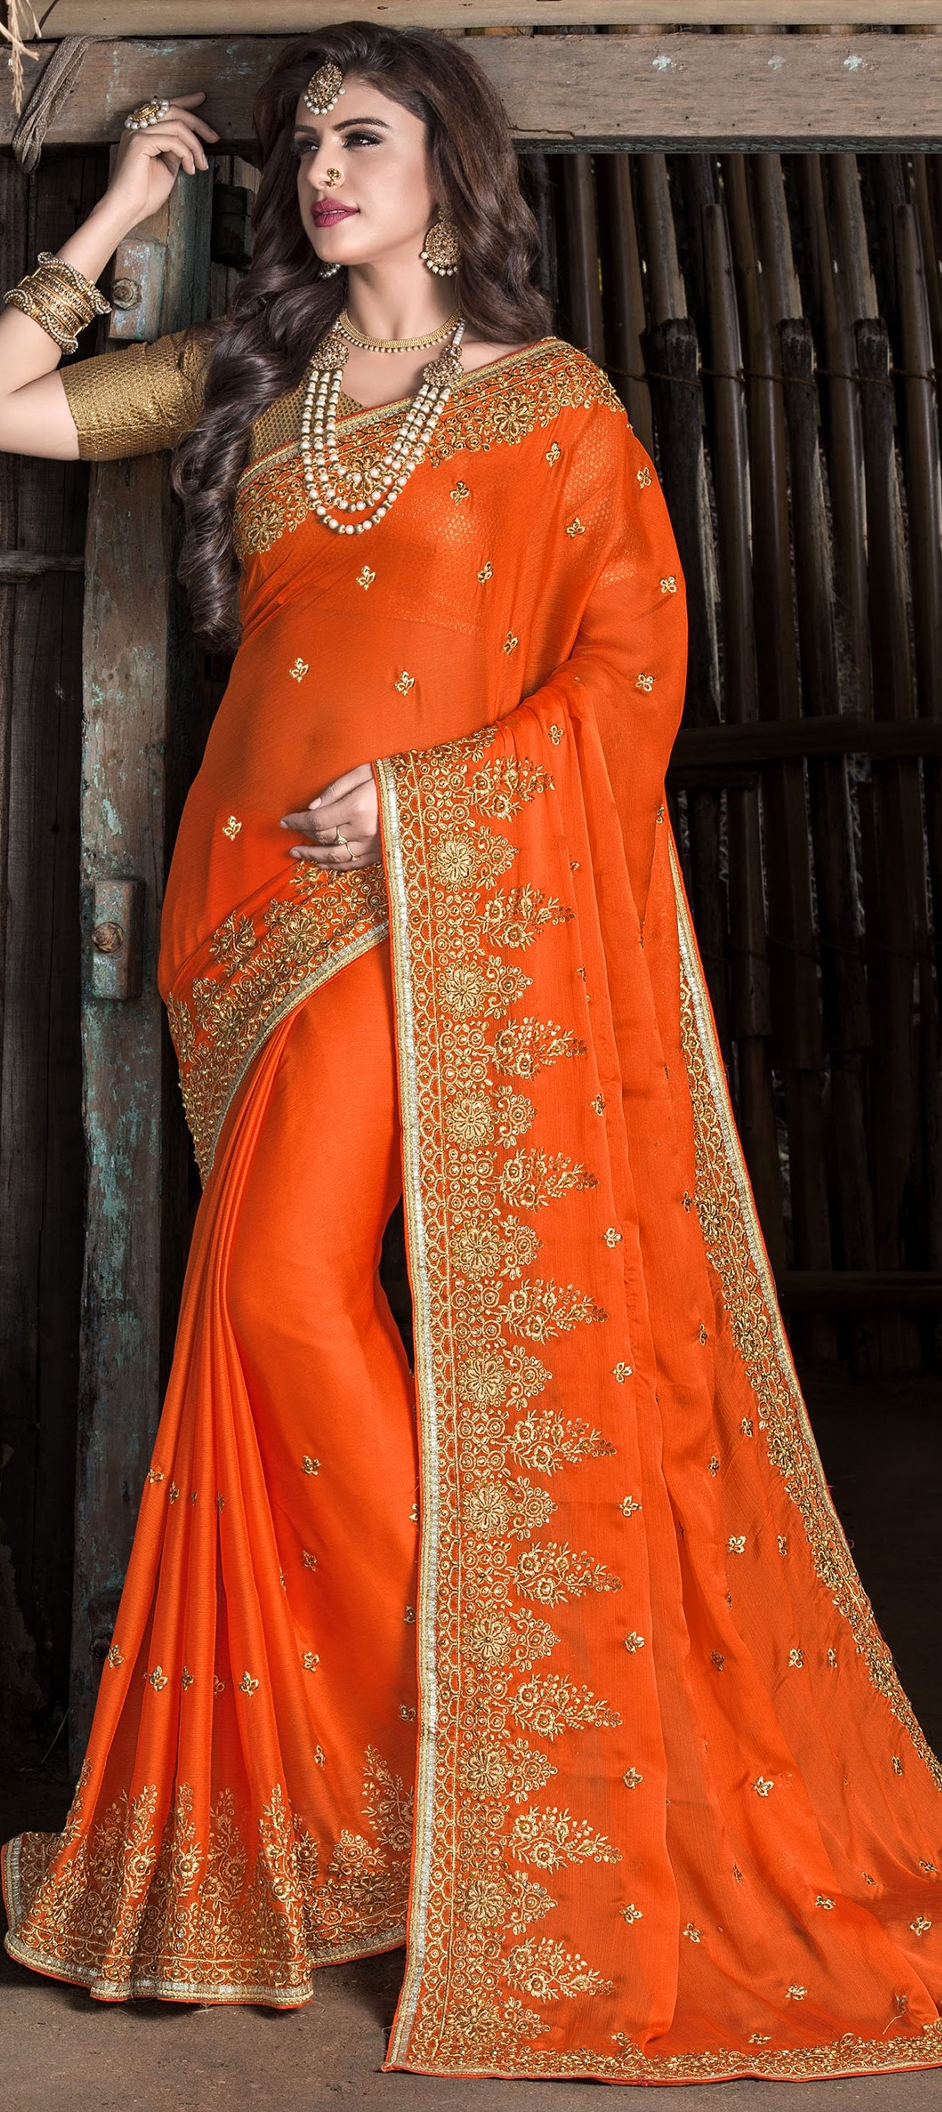 739021: Orange color family Embroidered Sarees, Party Wear Sarees ...